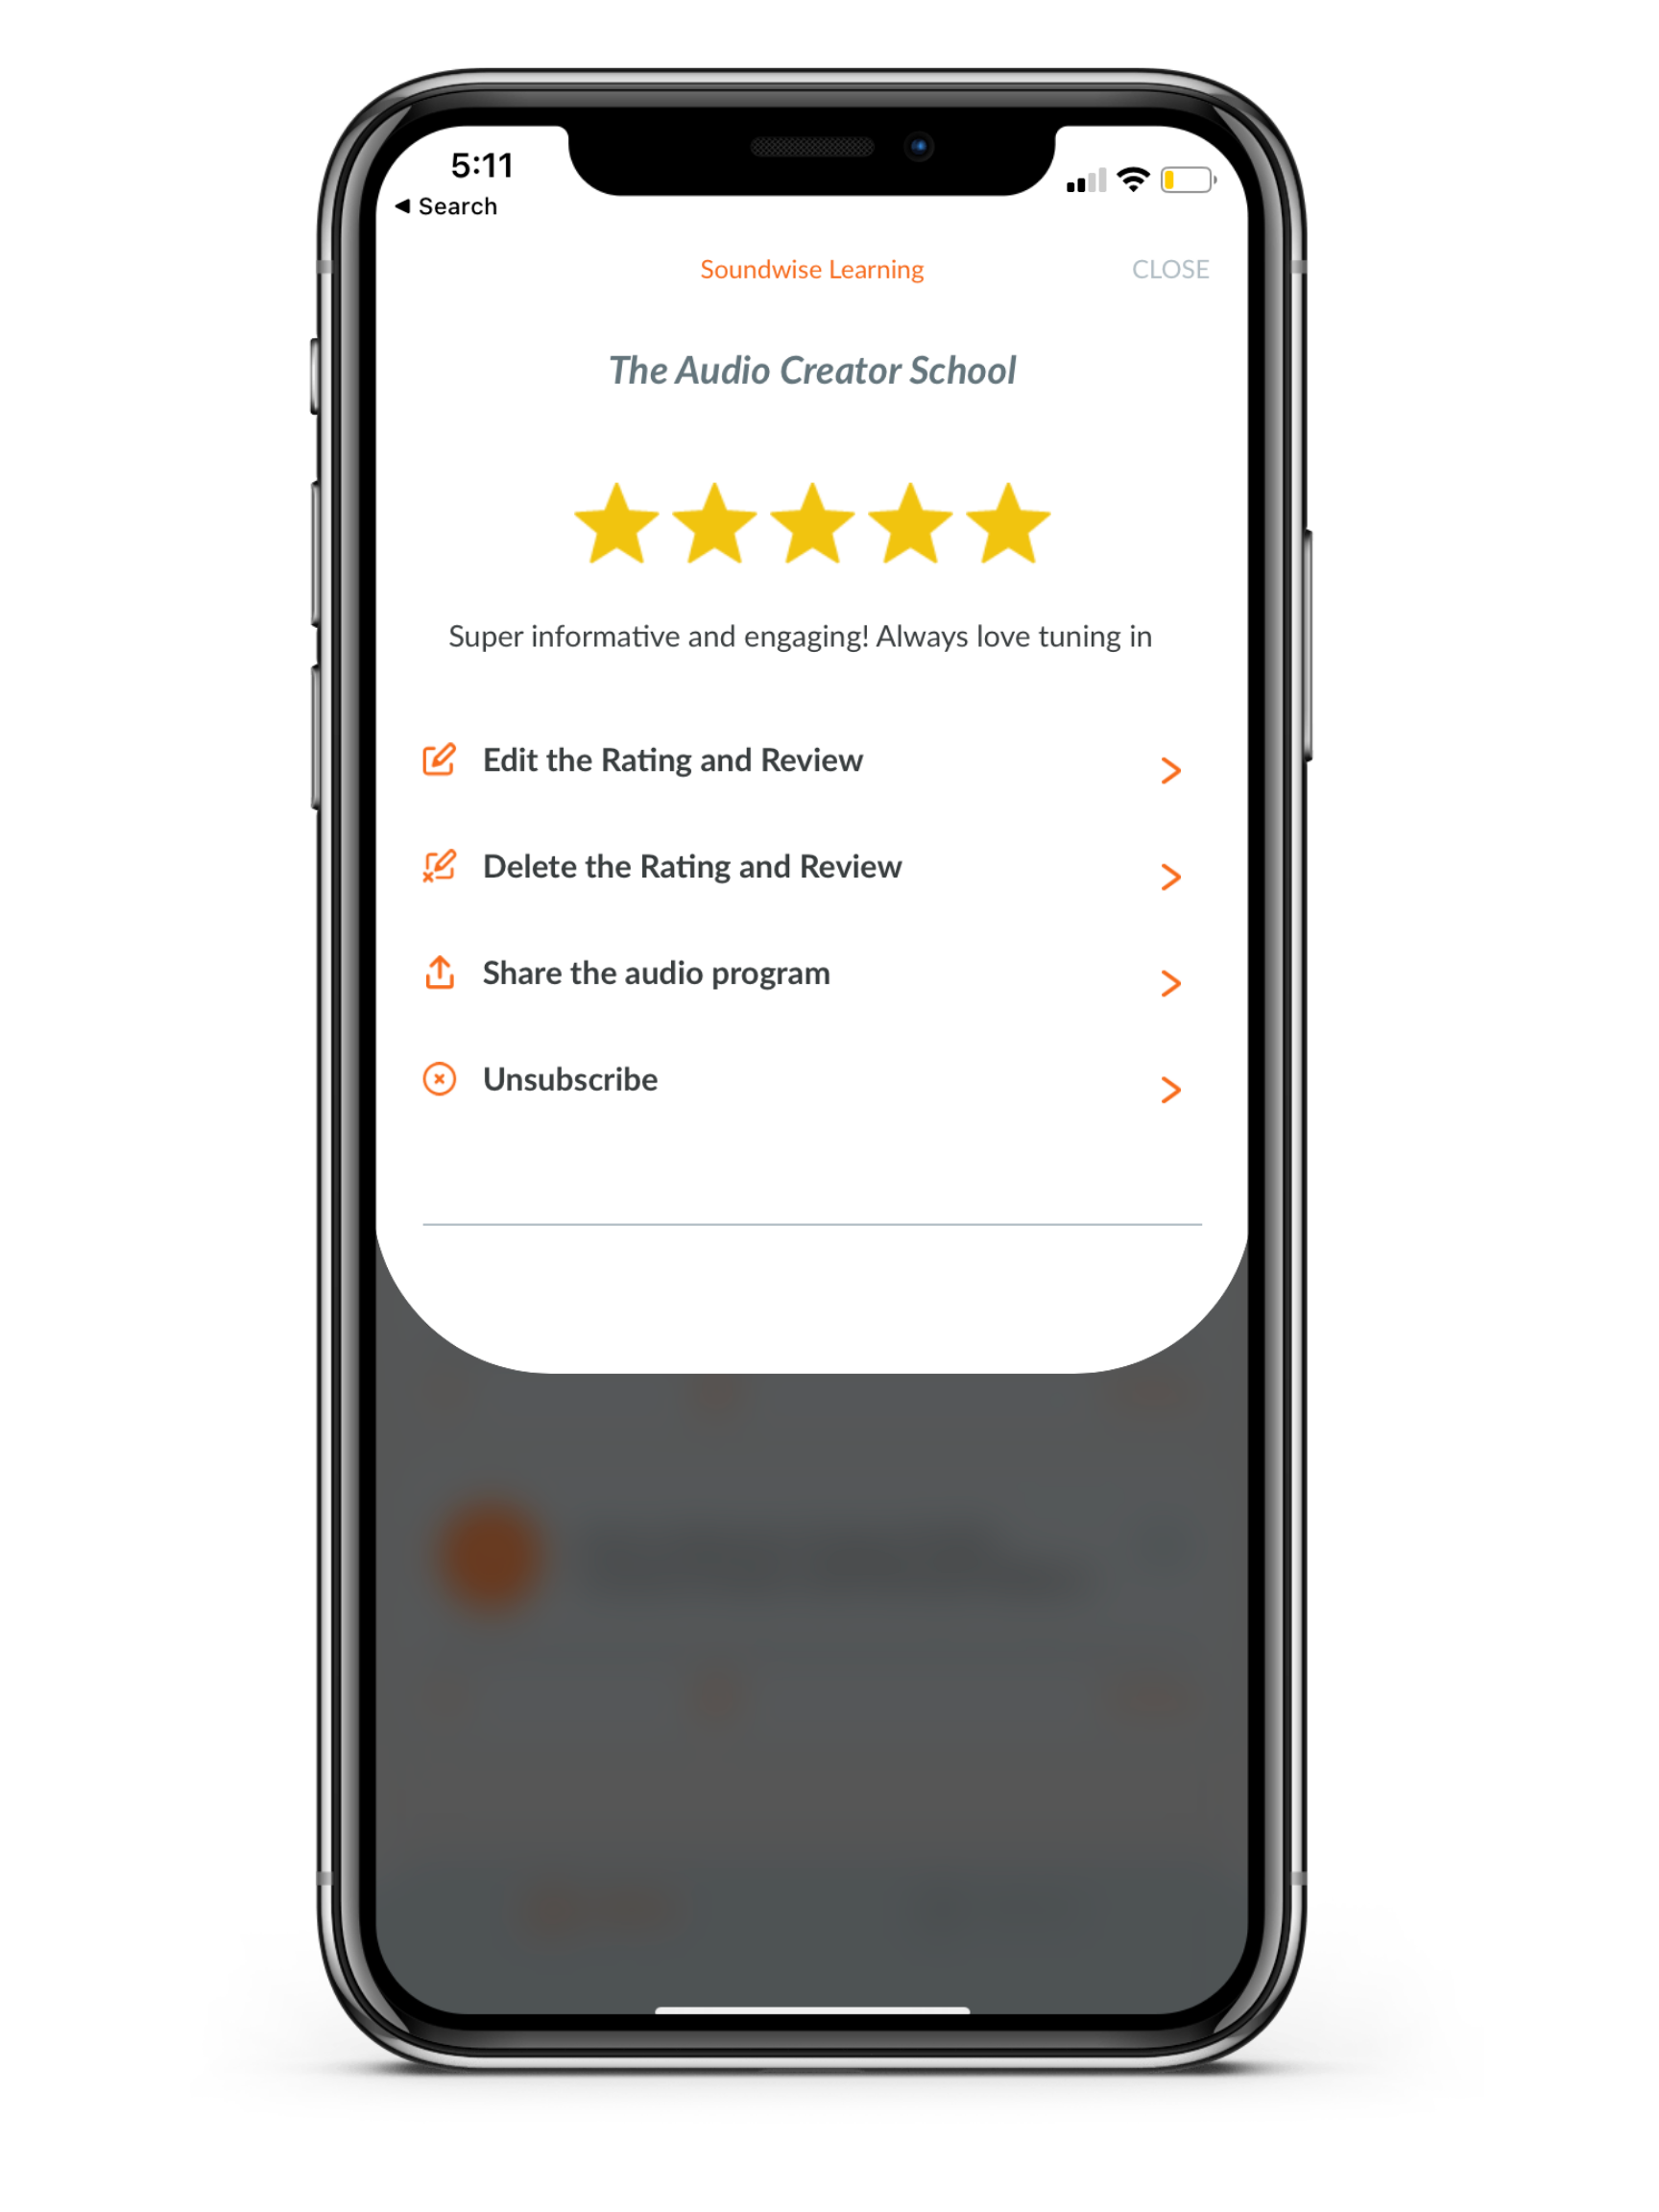 Editing ratings on Soundwise mobile app